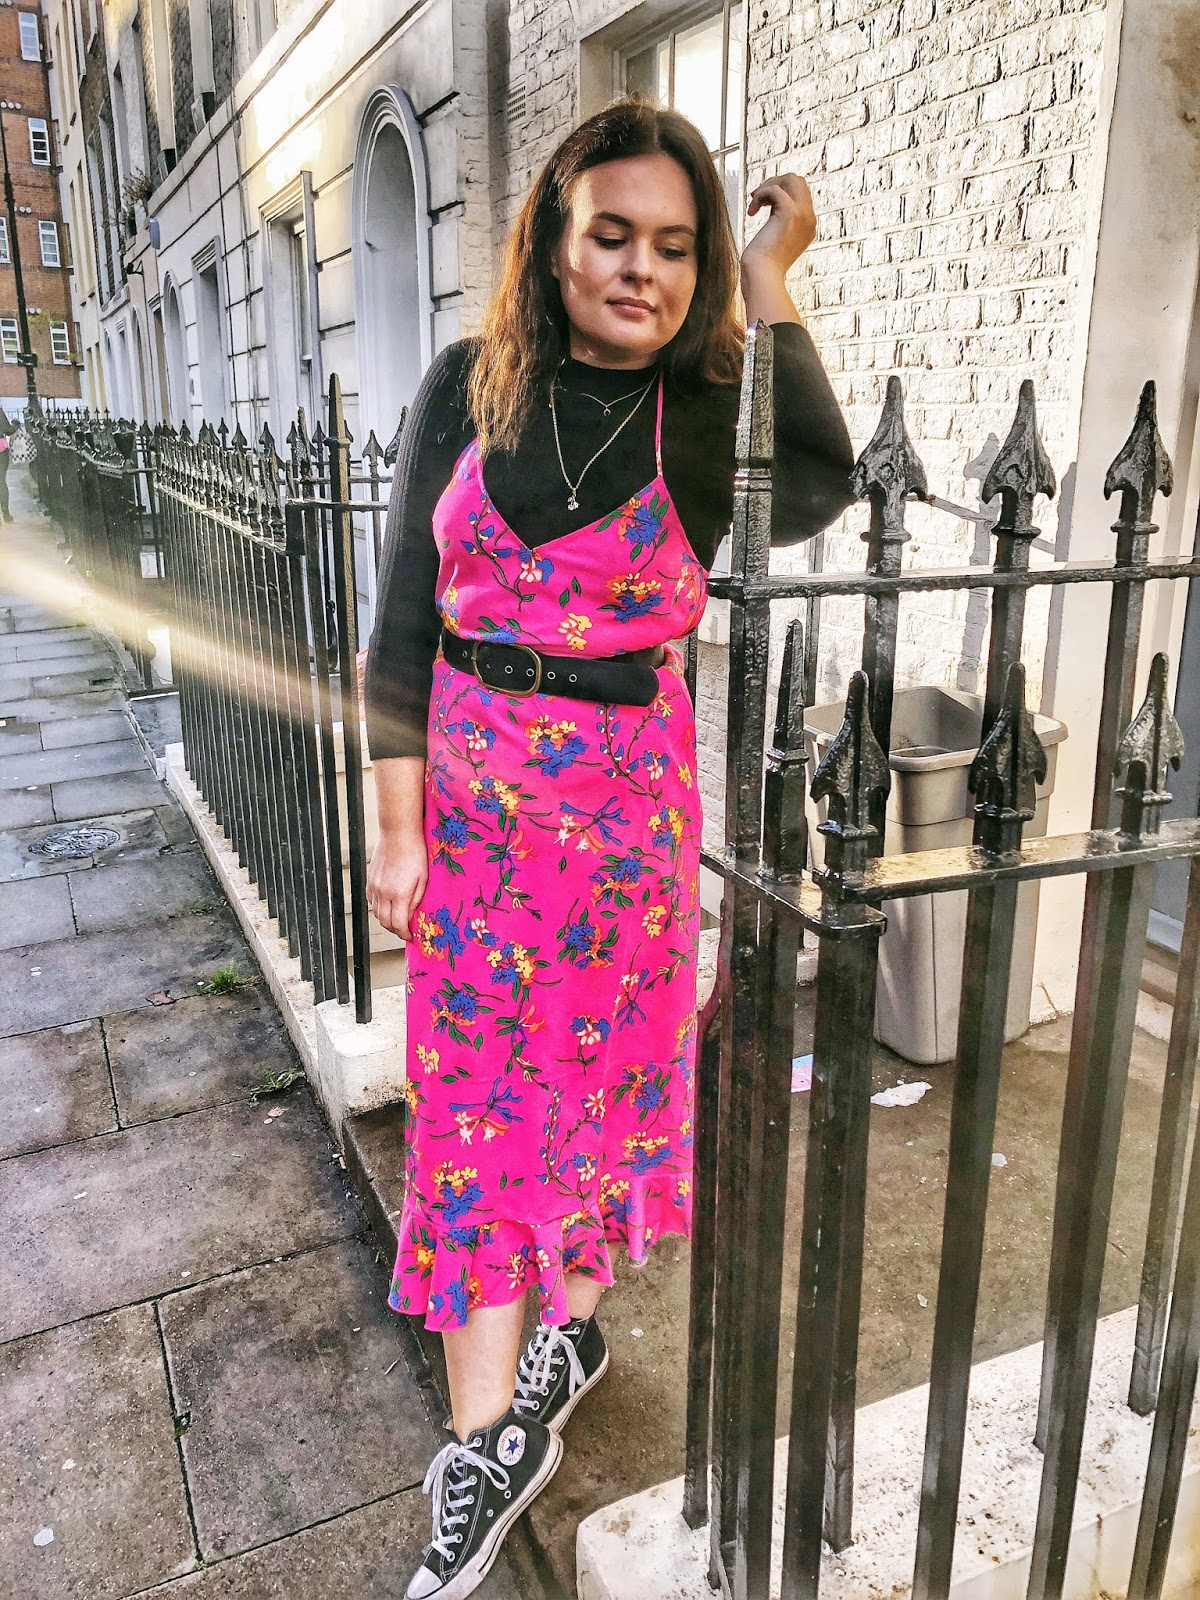 pink floral topshop dress, topshop style, uk blogger, fashion blogger, mental health blogger, blogger backlash, new blogging, new blogger, blogging 2.0